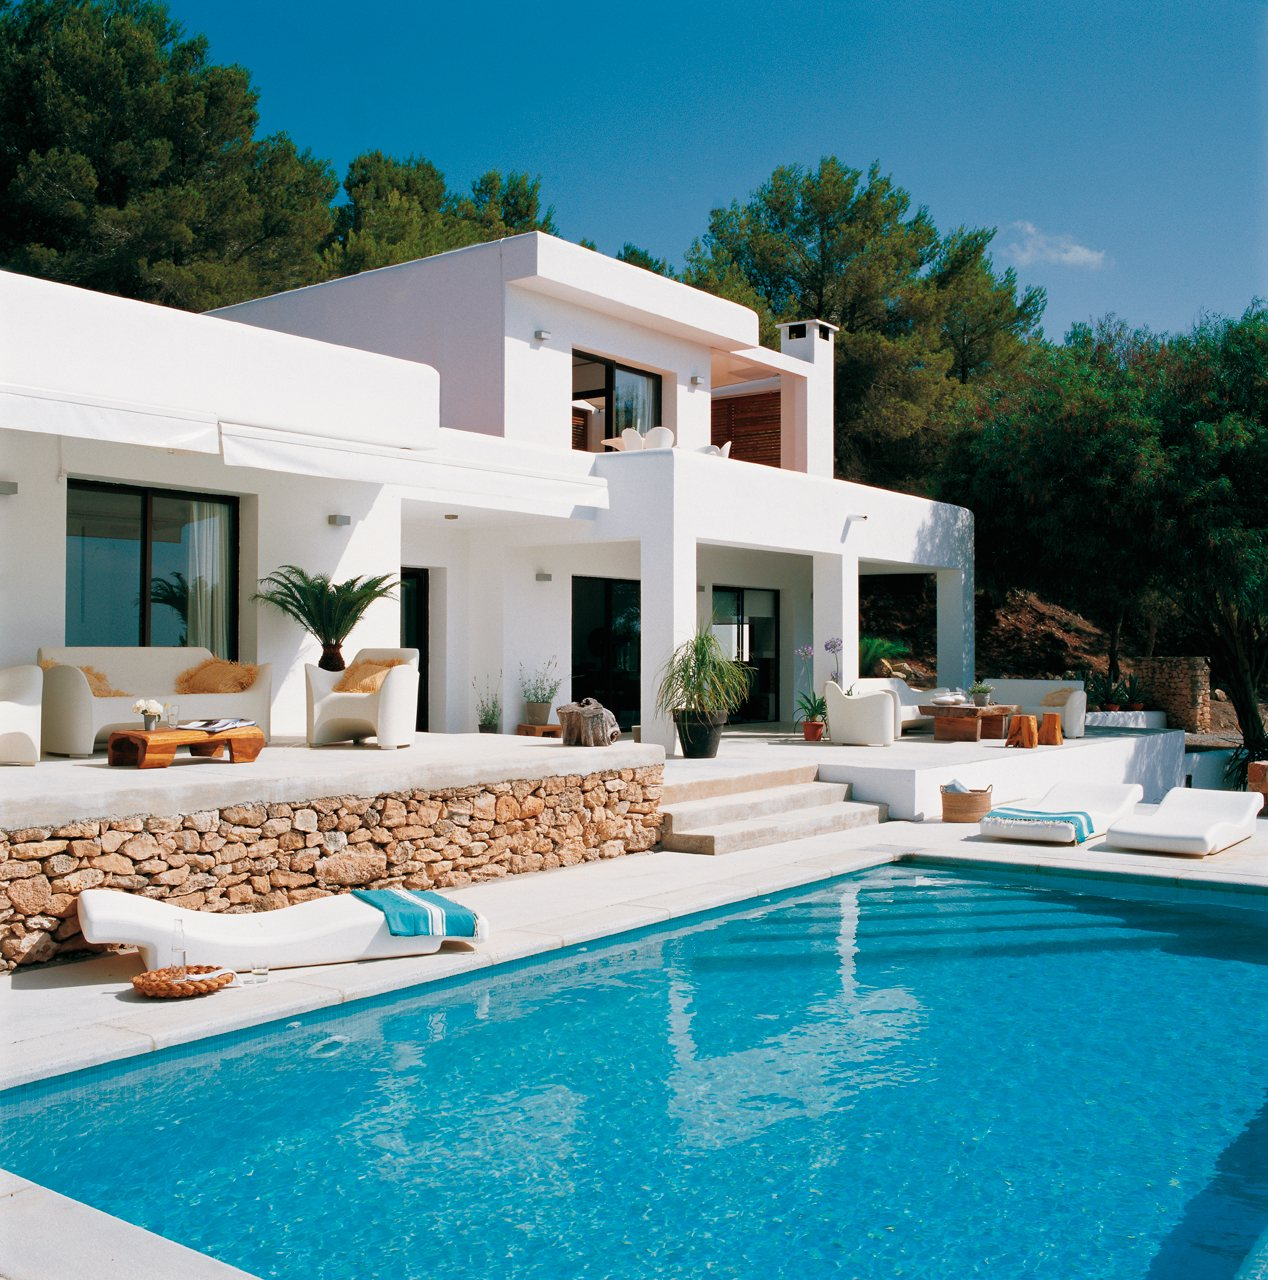 Home Designs October 2012: Stunning Mediterranean Style Home In Ibiza